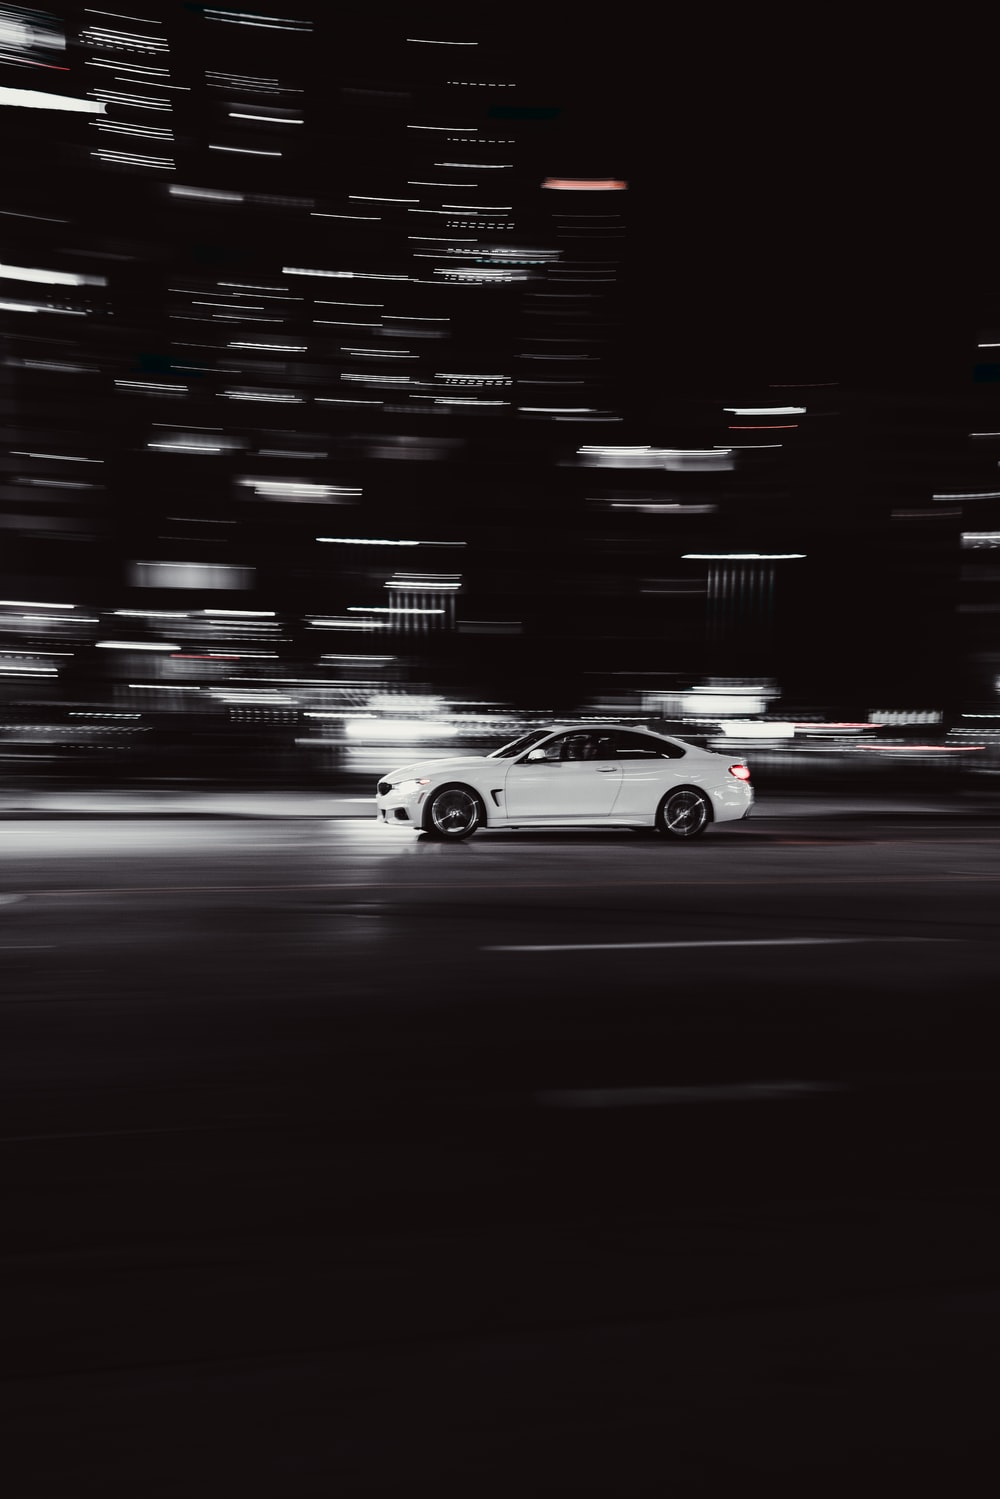 white coupe on road during night time